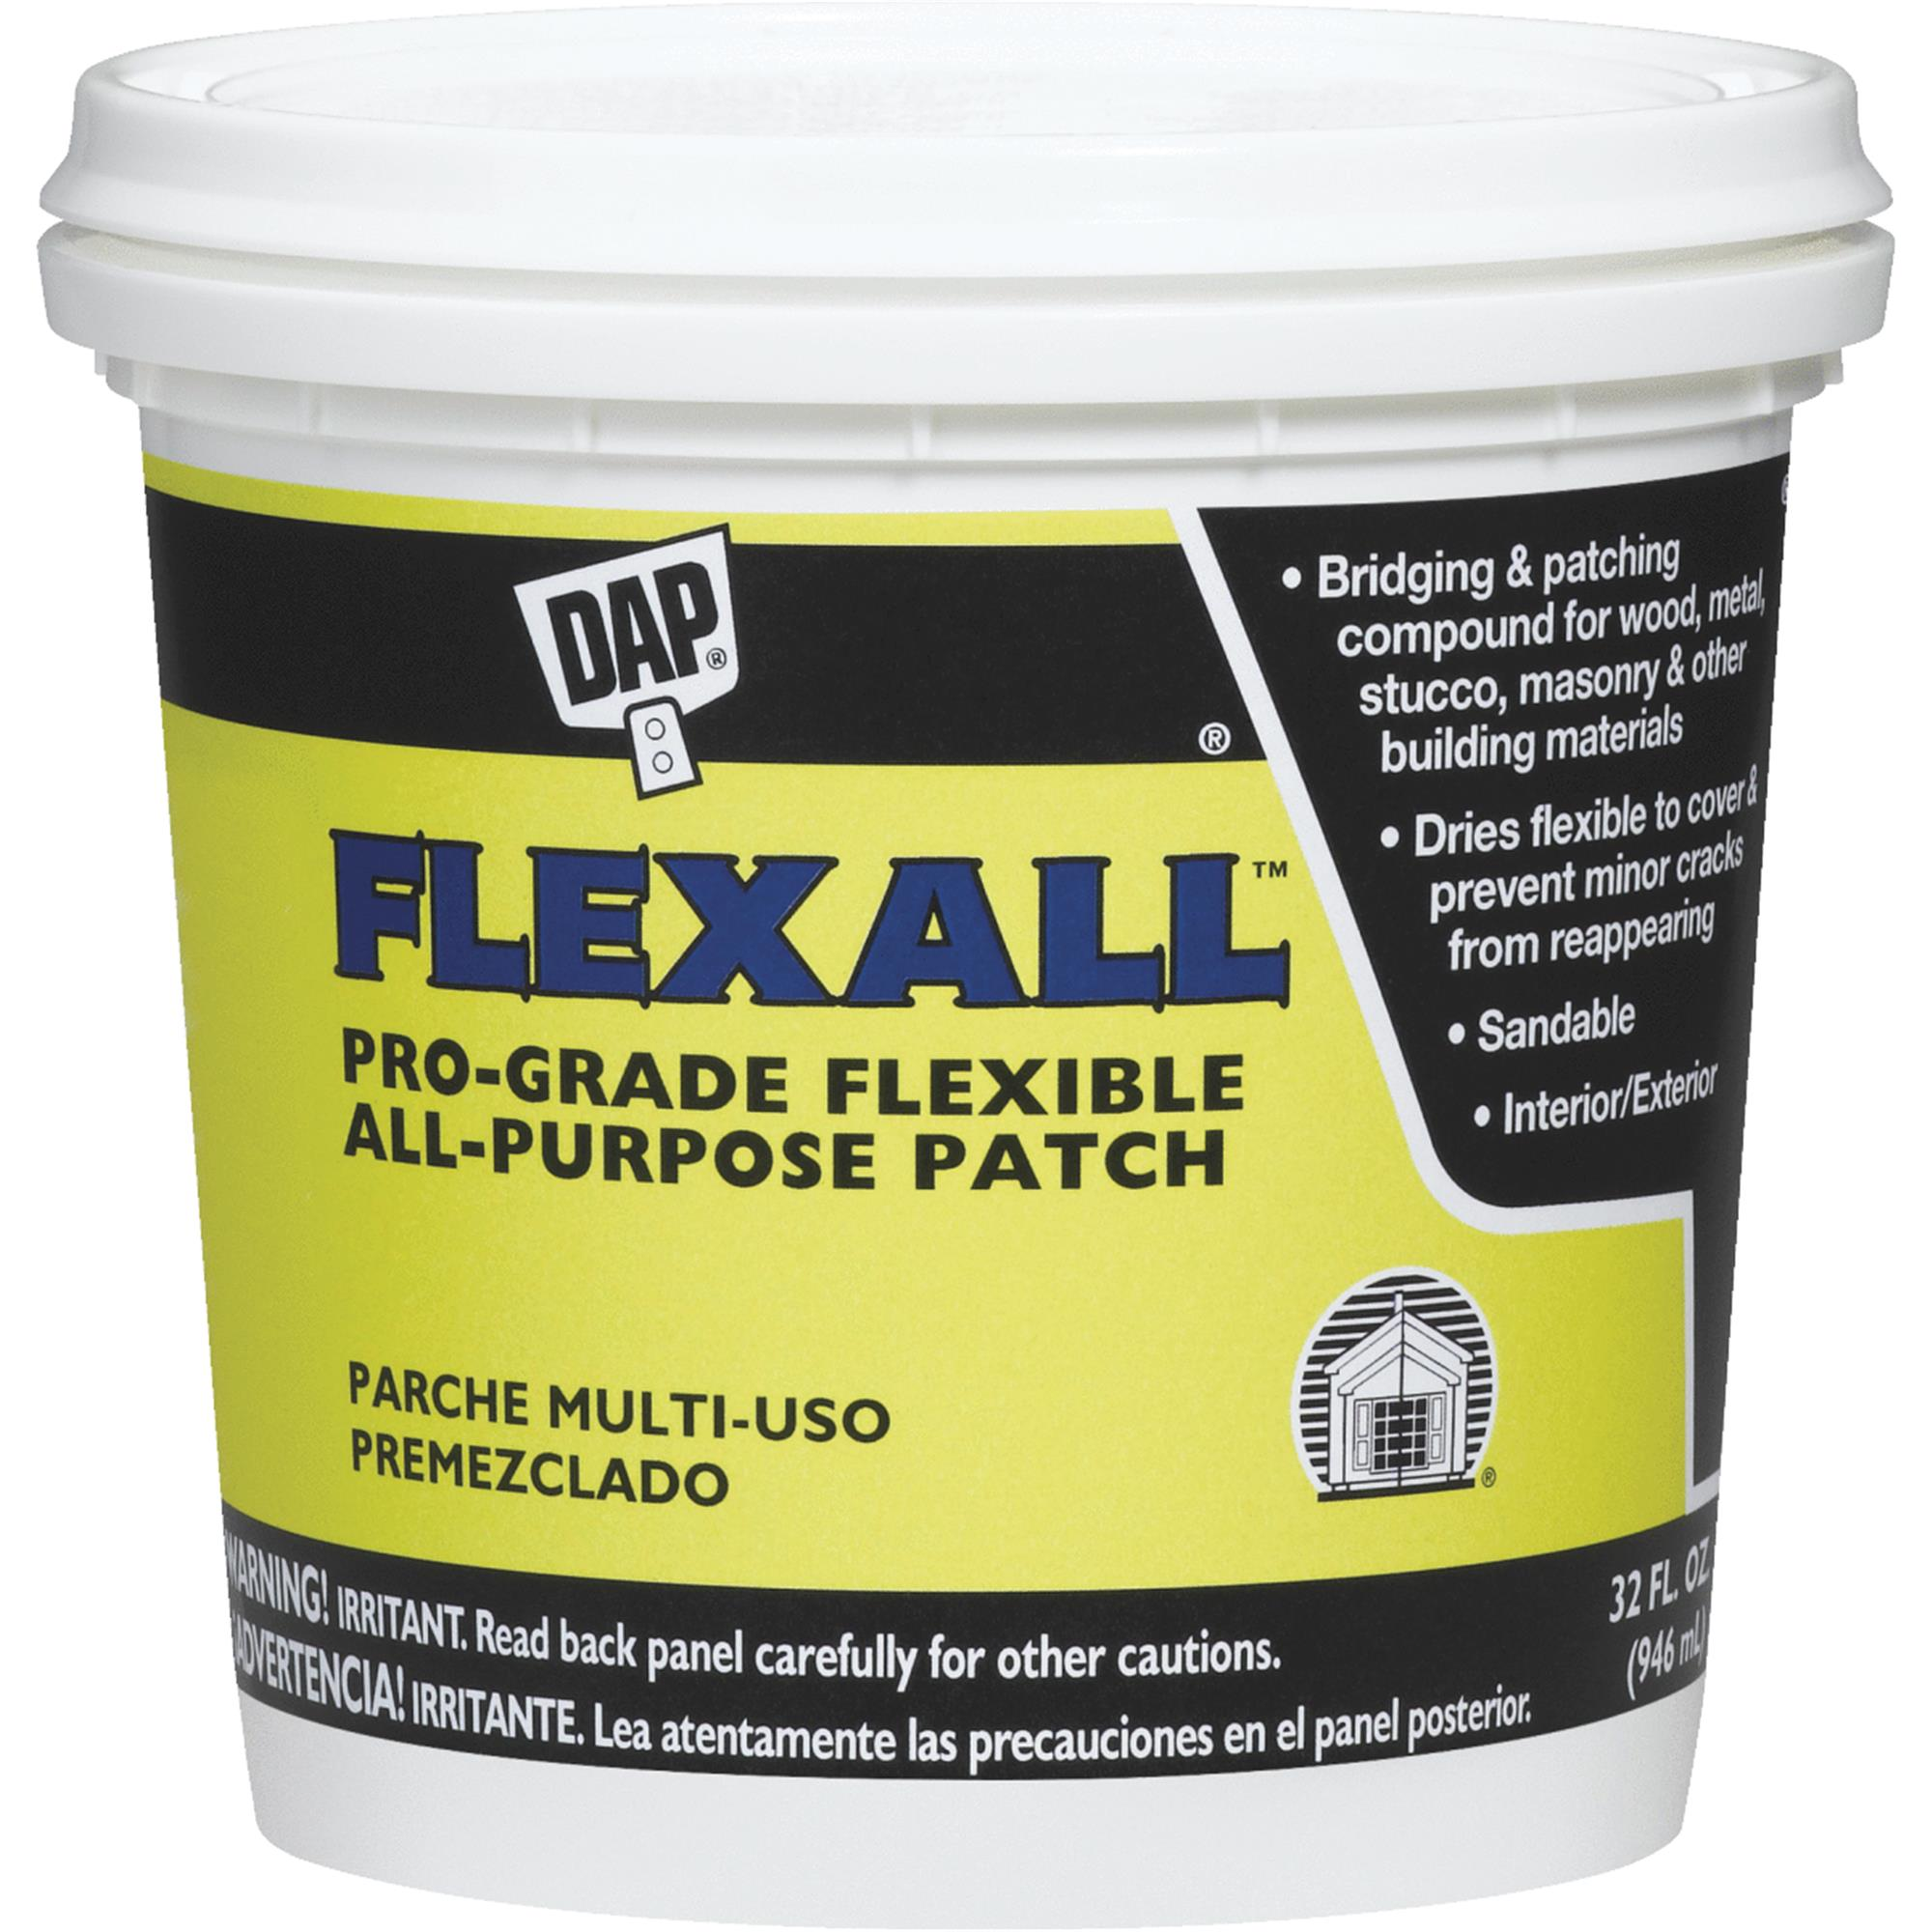 FLEXALL Flexible All-Purpose Patching Compound